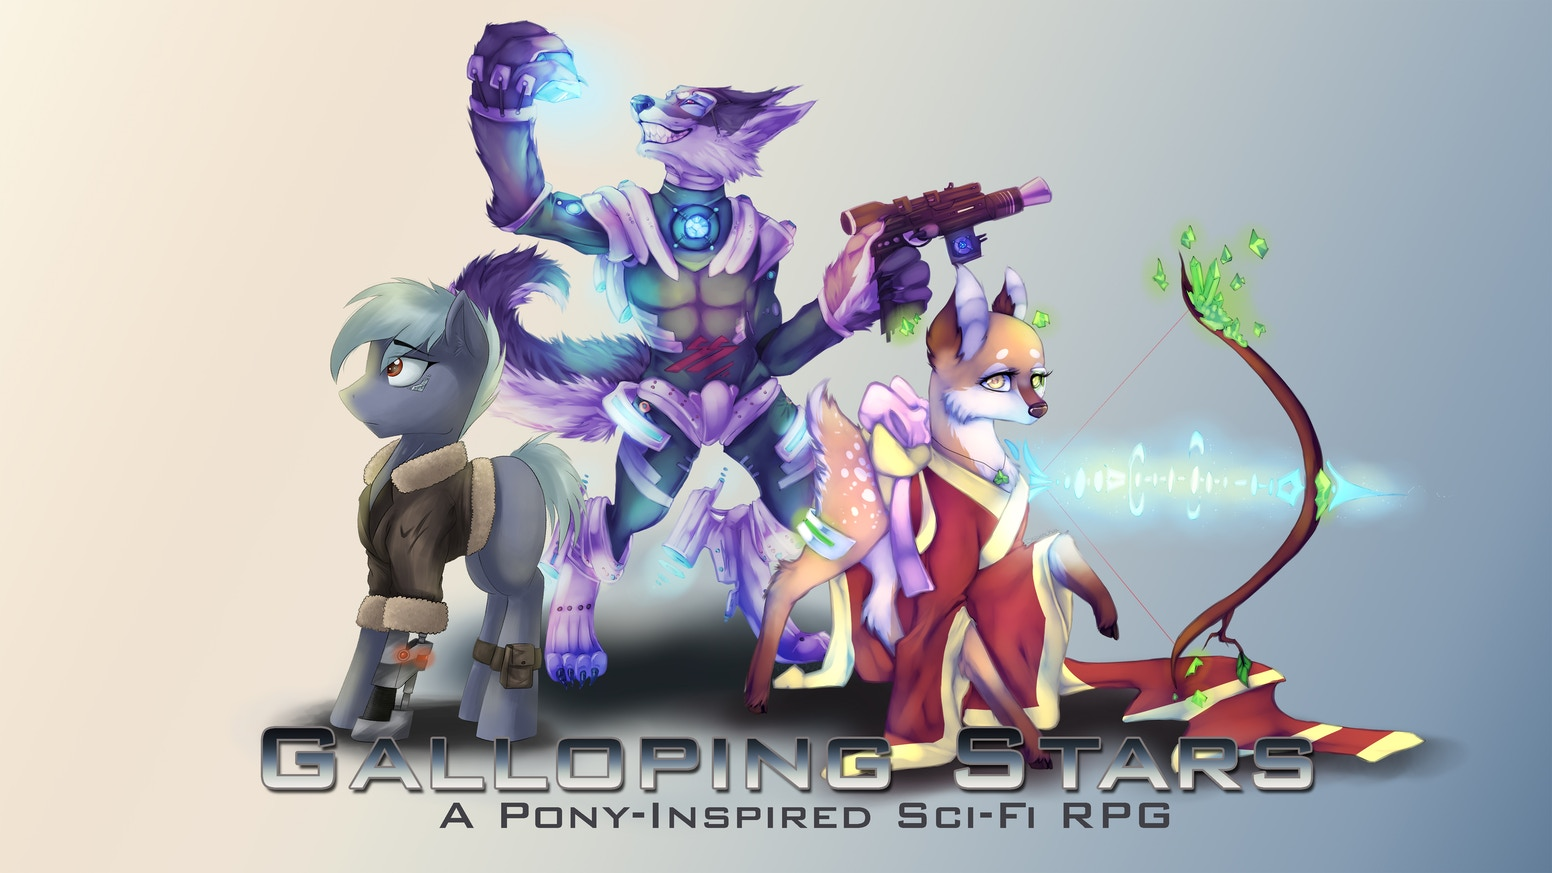 22f8a3a3f9 Galloping Stars RPG - A Pony-Inspired Sci-Fi RPG - Relaunch! by ...